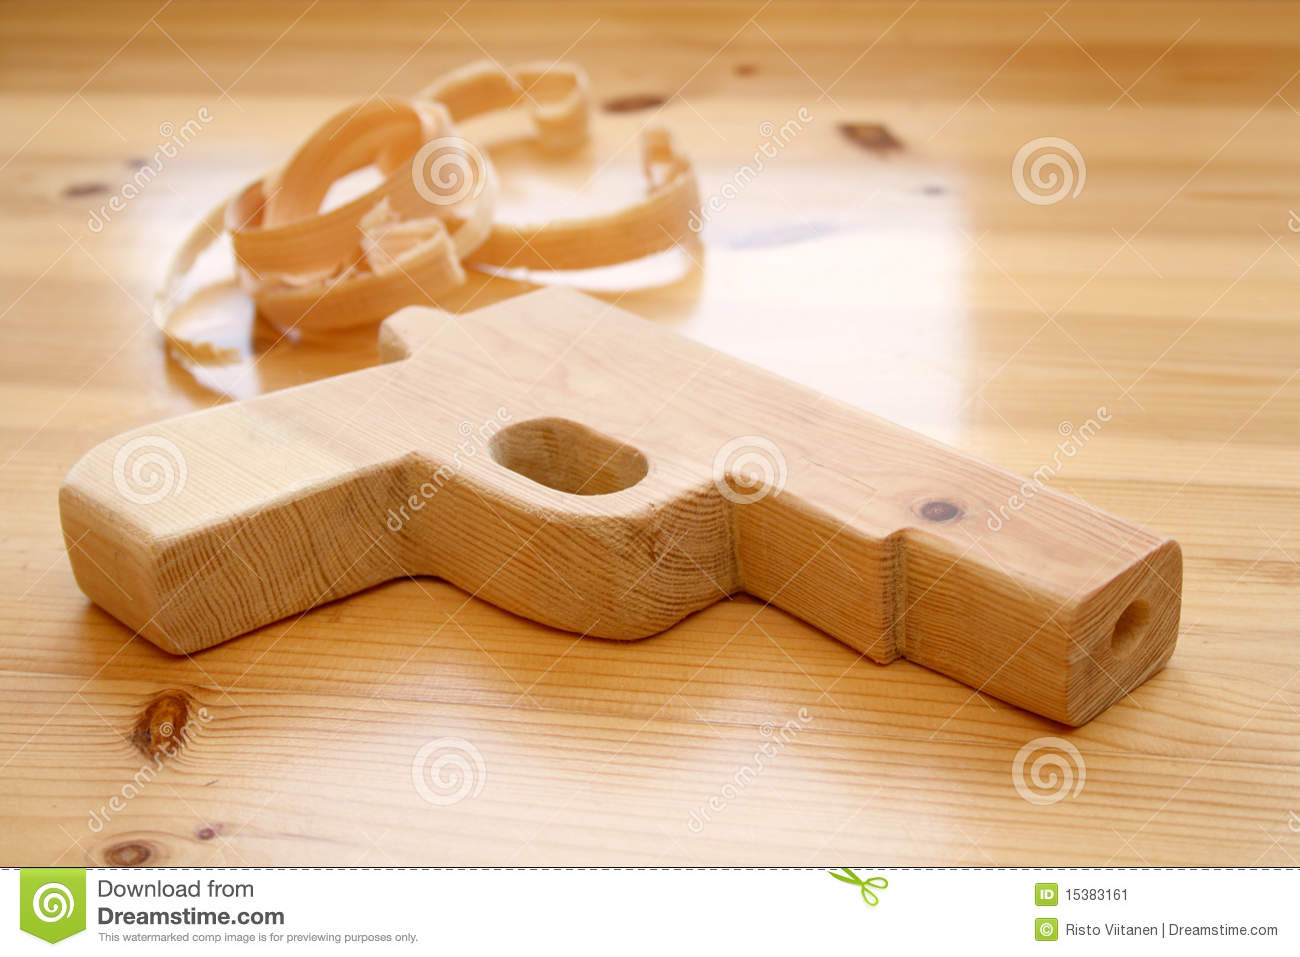 wooden toy gun with wood shavings stock image - image of